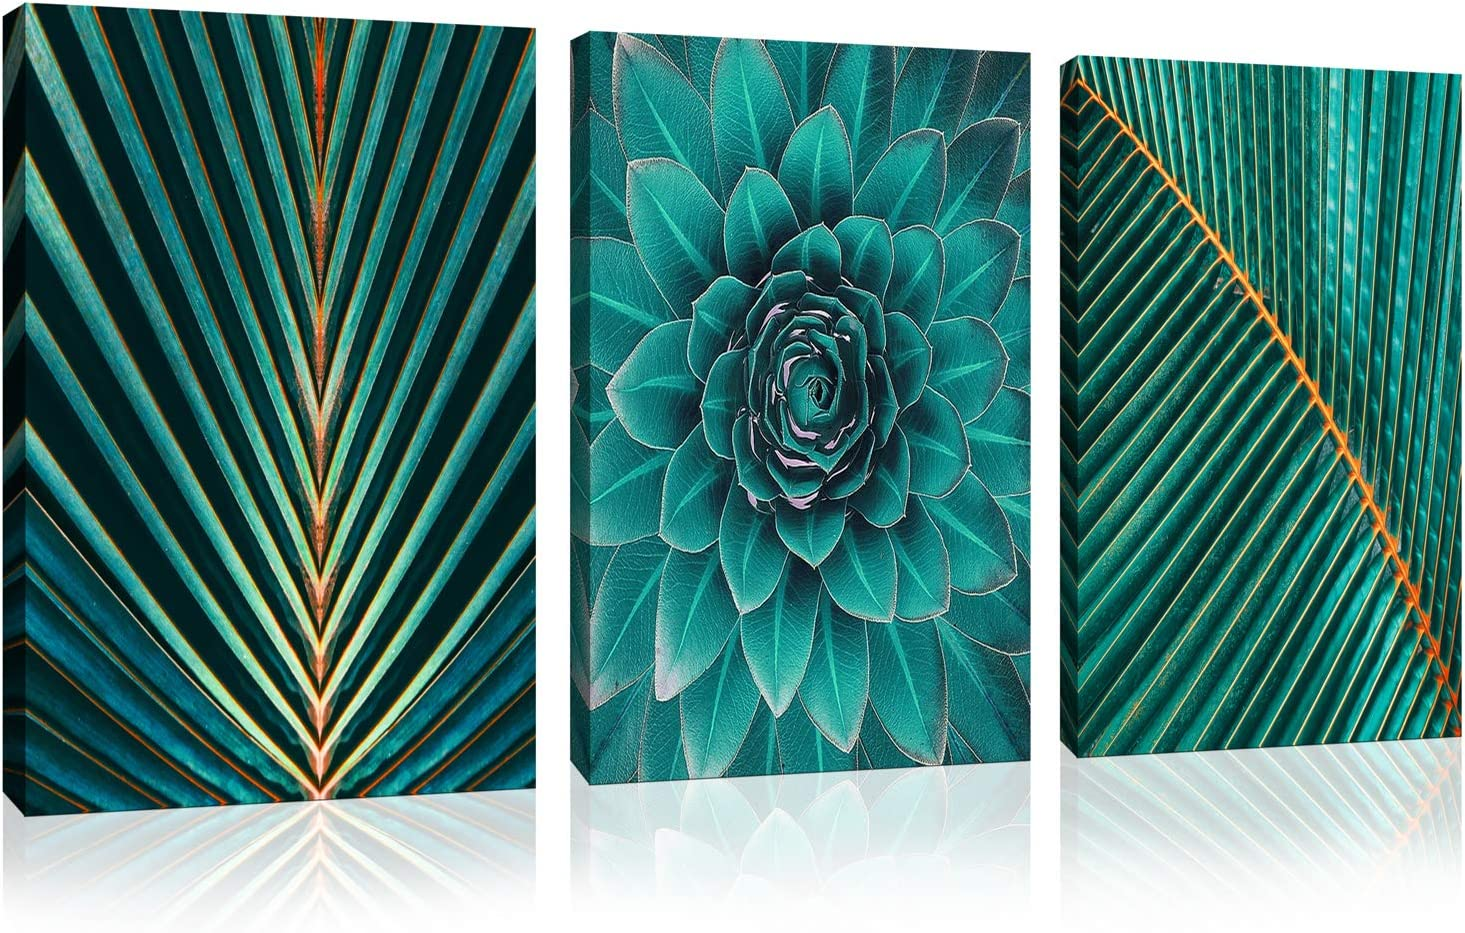 "Green Leaf Wall Art for Bathroom Canvas Print Modern Abstract Art Decoration Tropical Plant Banana Leaf Wall Decor for Bedroom Each piece size 12"" x 16"" inches"